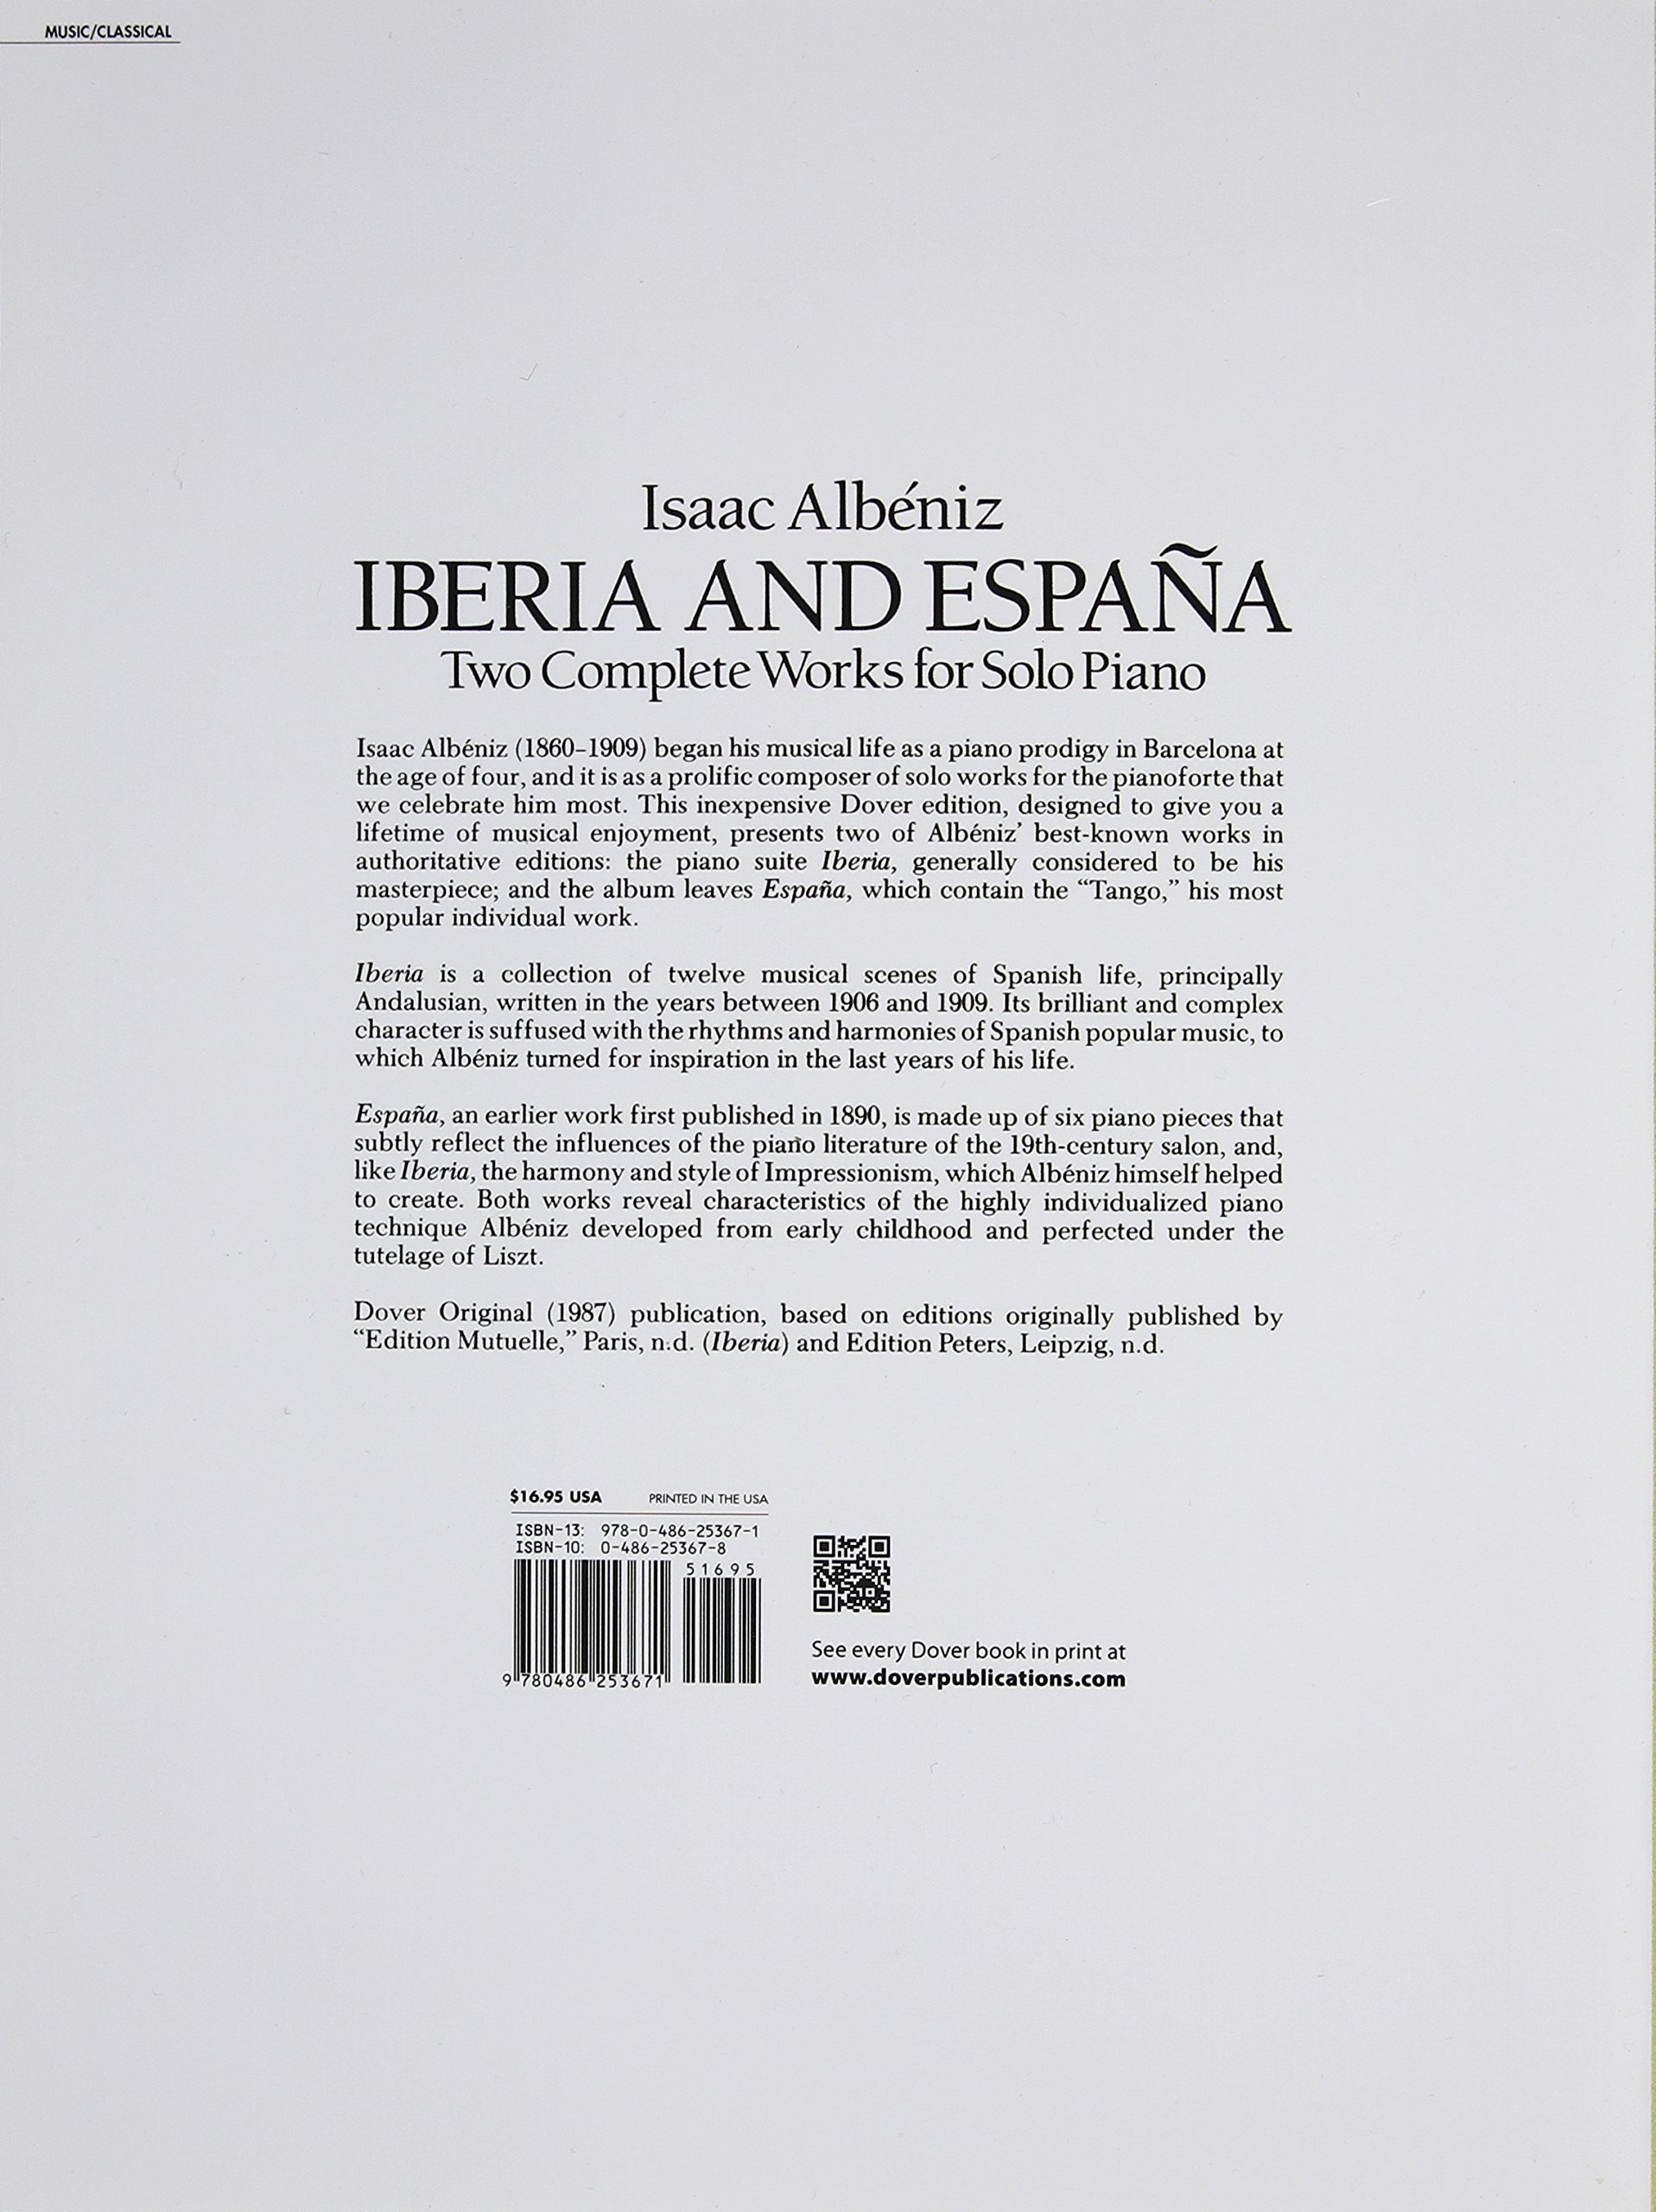 Two Complete Works for Solo Piano Iberia and Espana